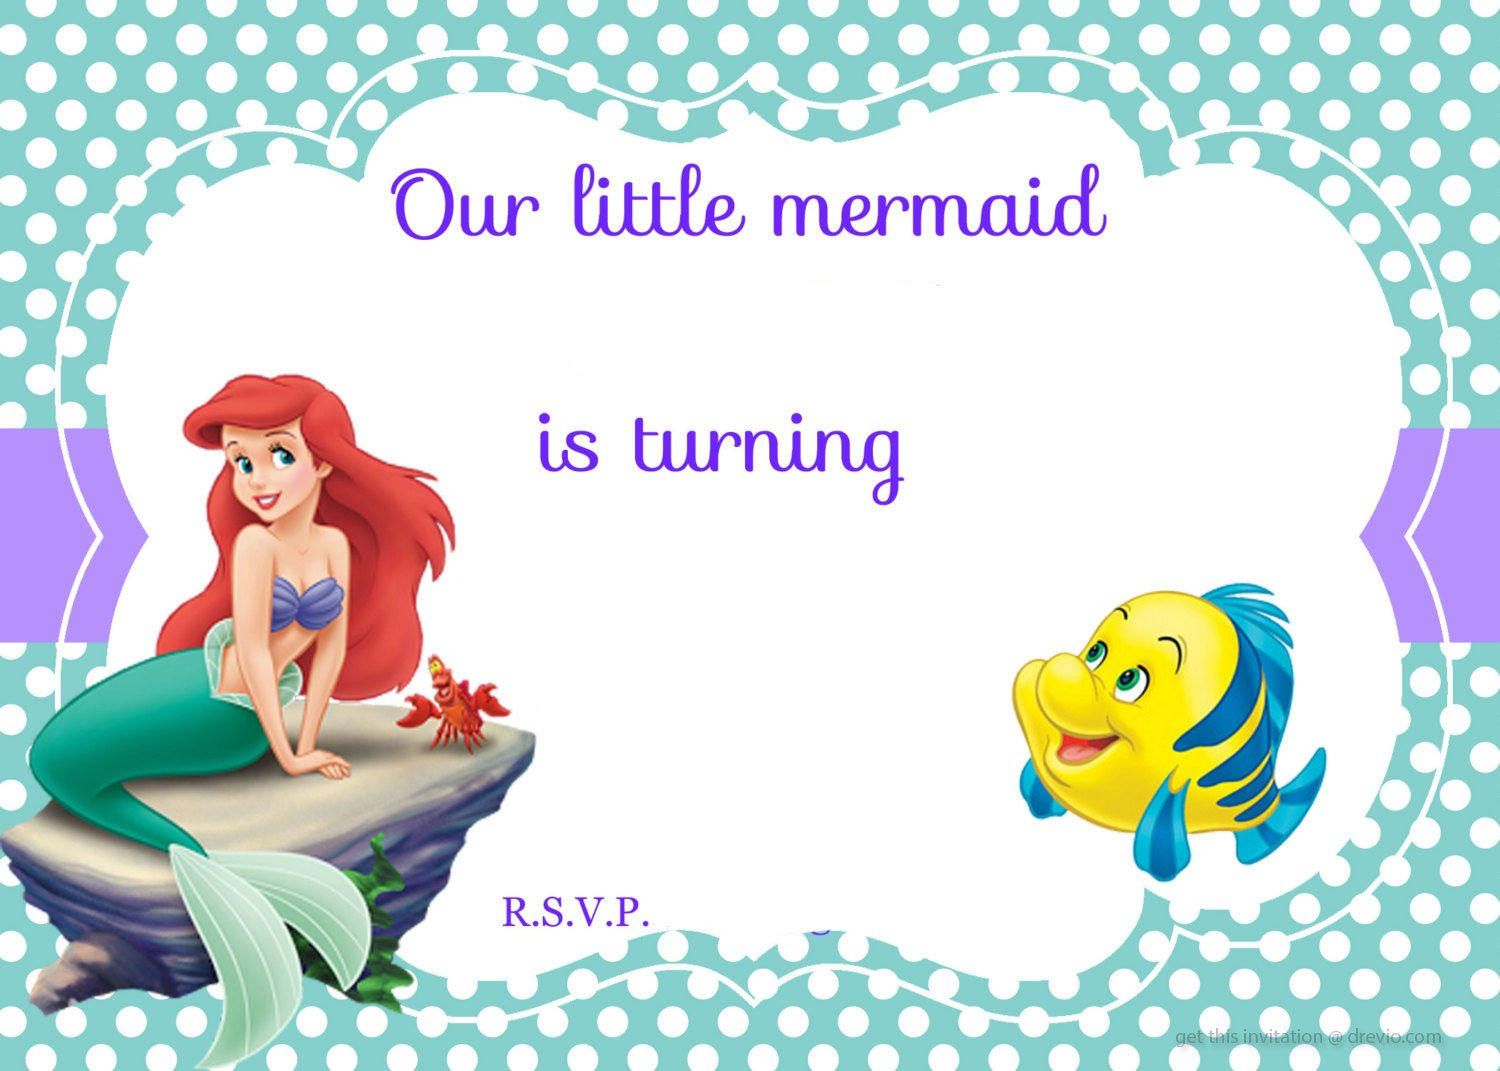 Updated free printable ariel the little mermaid invitation template to download this invitation template simply click on the image and save image as save it on your desired folder filmwisefo